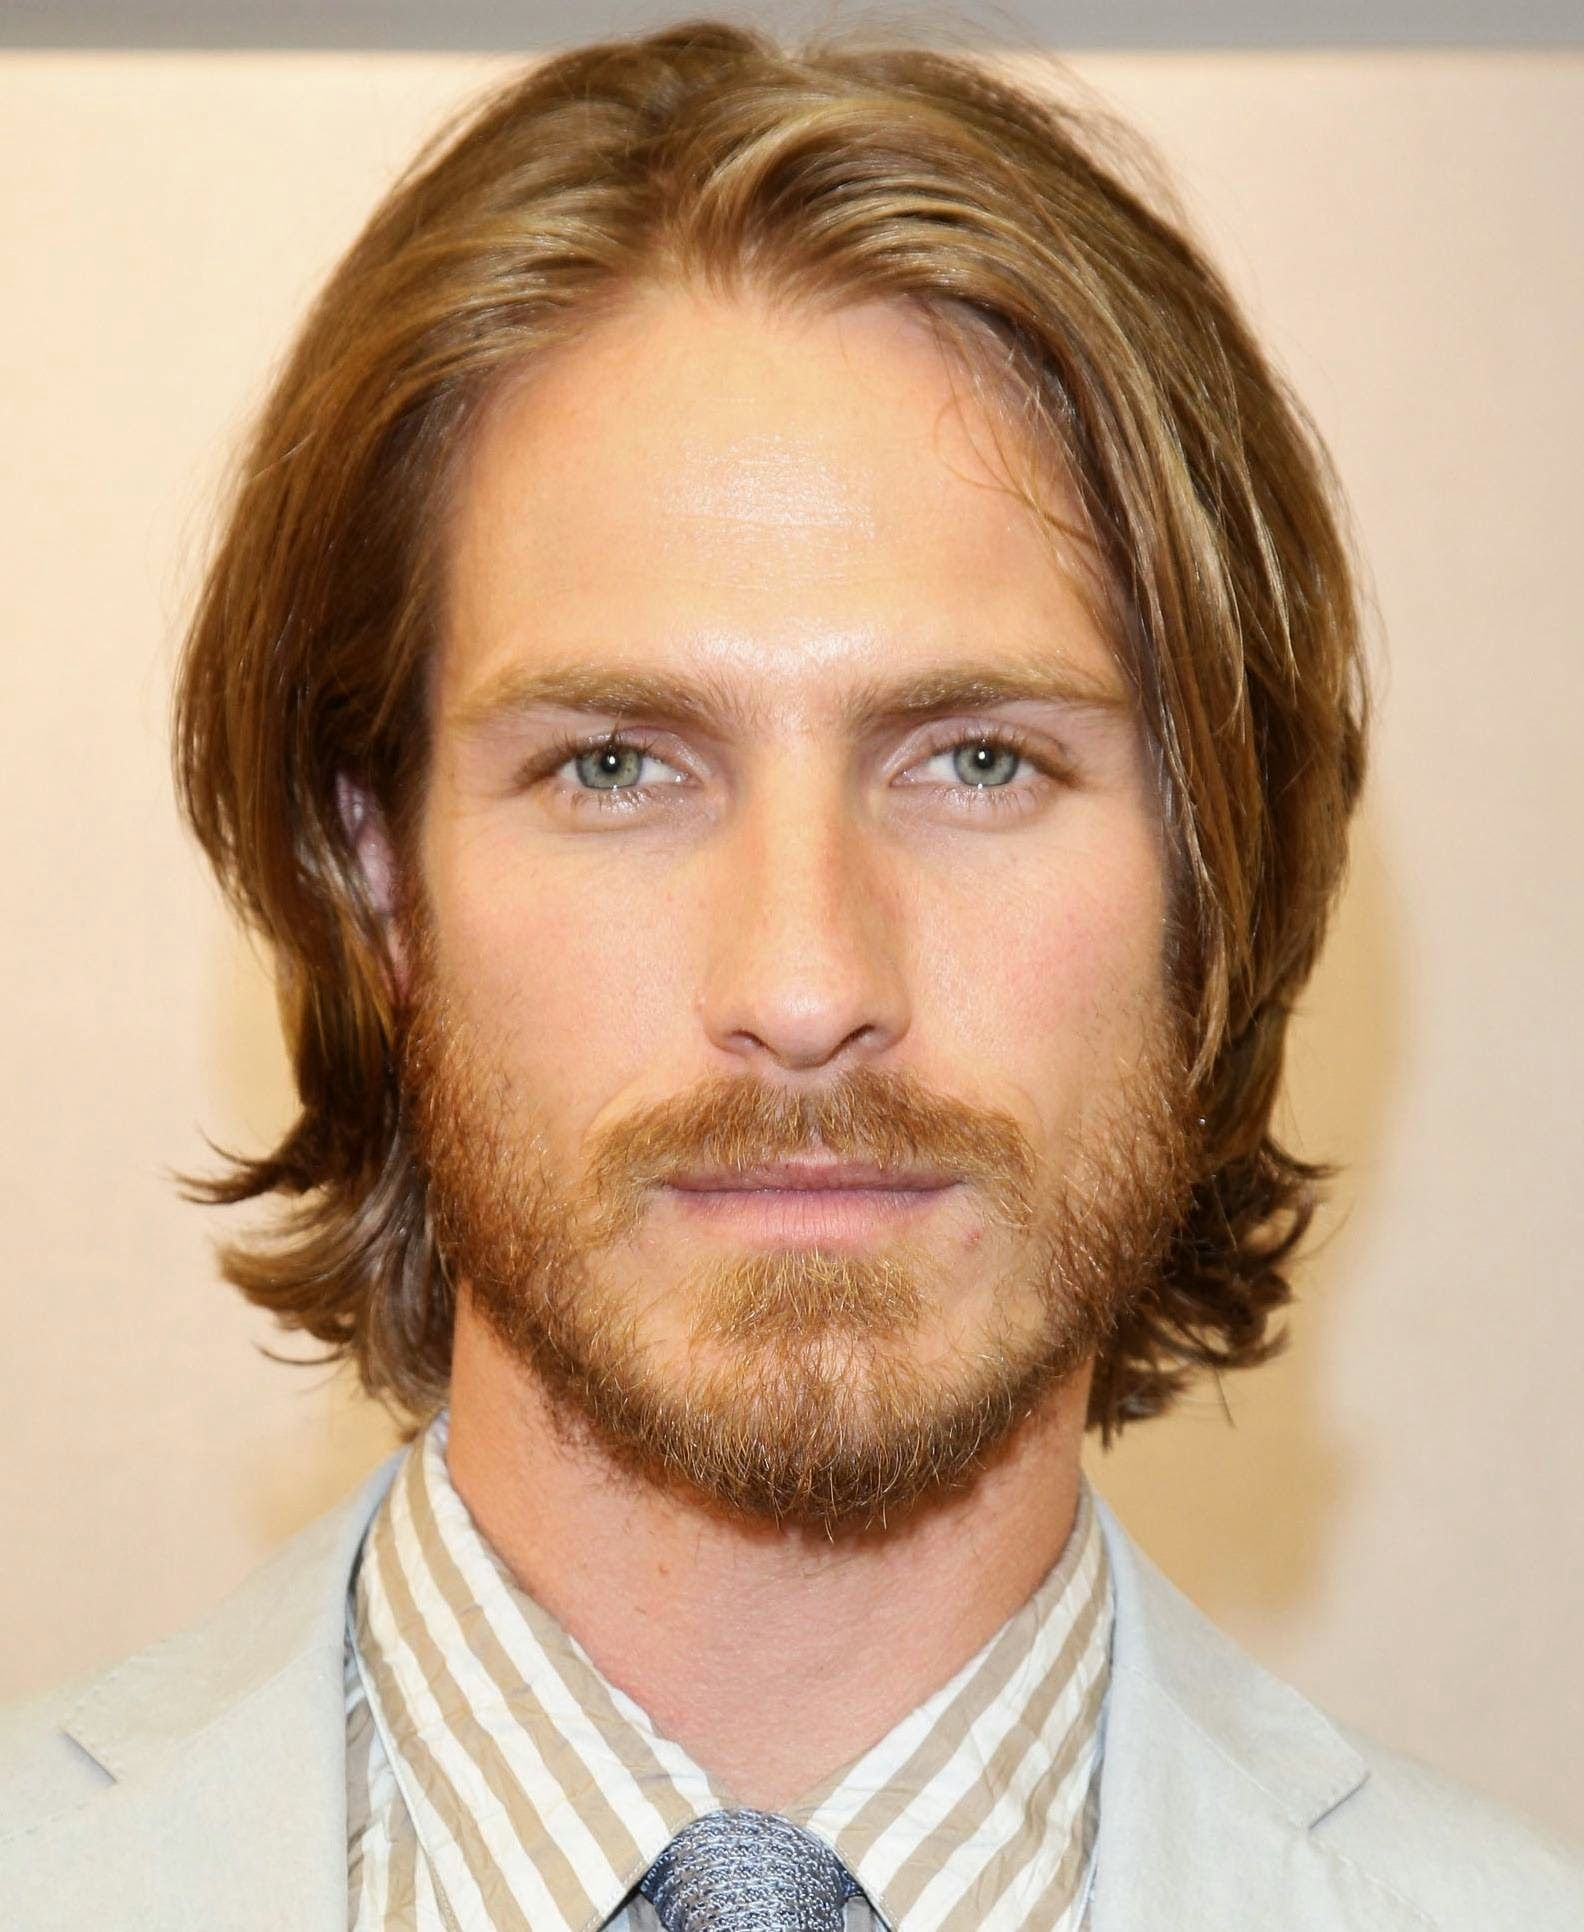 Hairstyles For Men With Coarse Hair Coiffure Homme Coiffure Homme 2017 Cheveux Homme